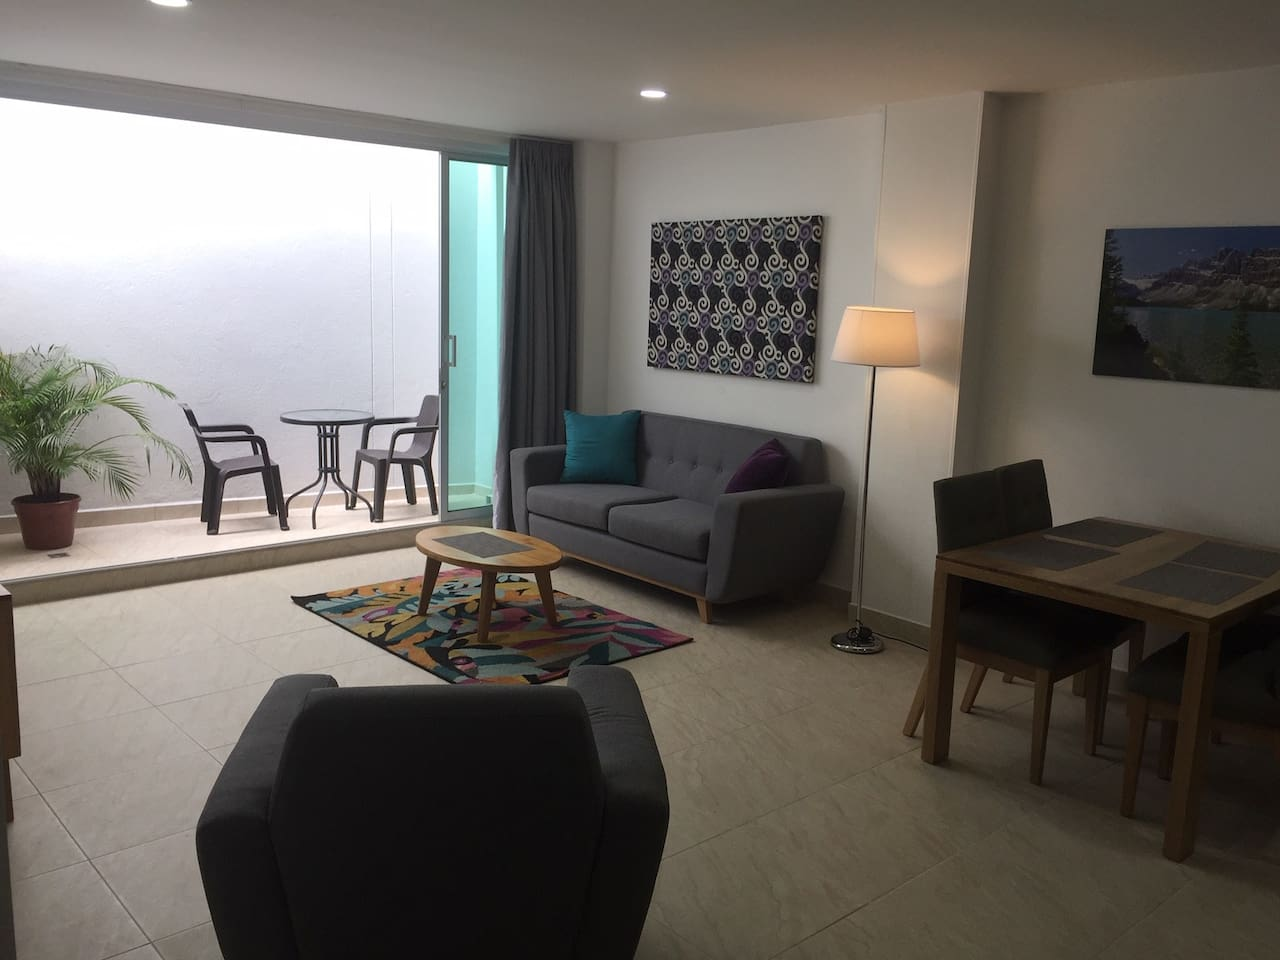 New 2BD/2BA Apt 85m2/915 sq ft with small private terrace + 25 mb fiber-optic wifi